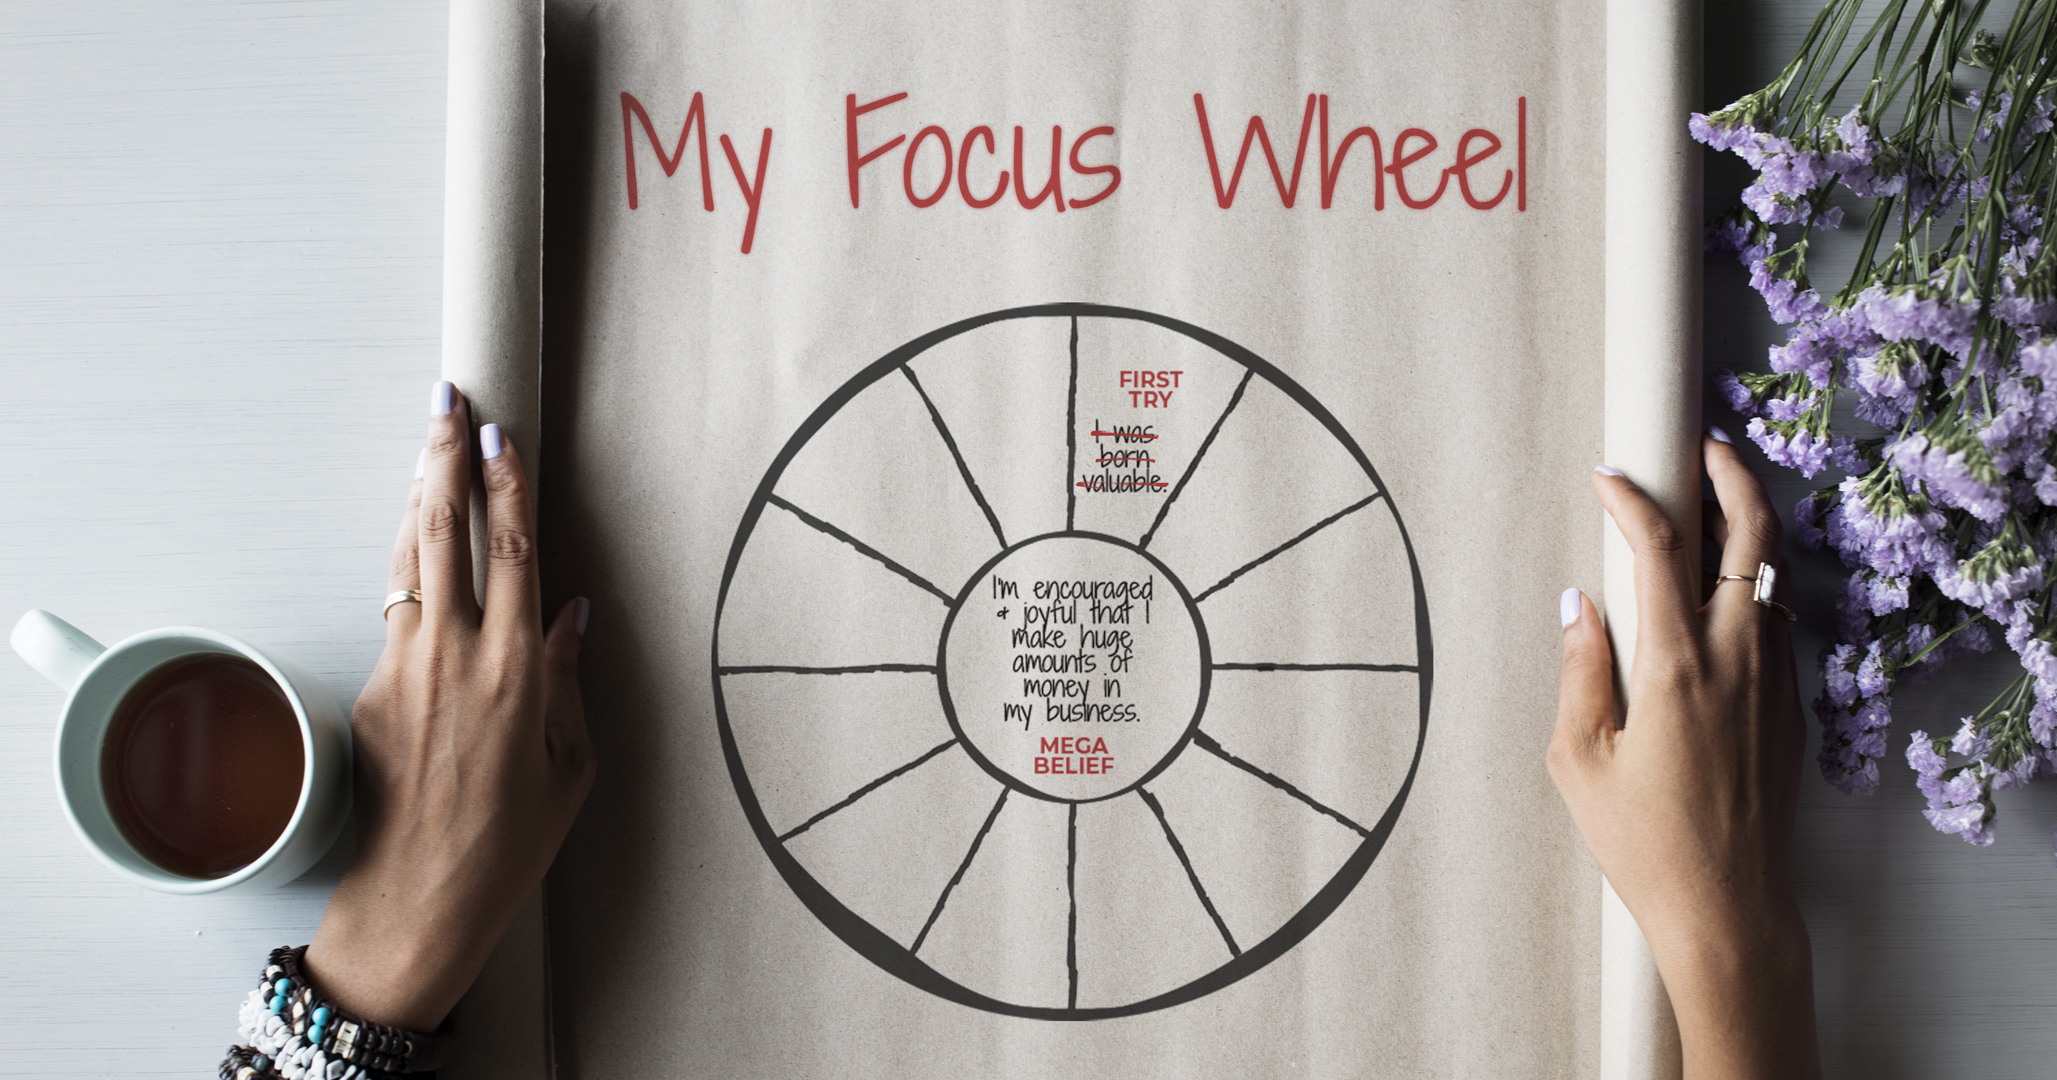 Improve Your Mind & Get What You Want Focus Wheels Hero Image